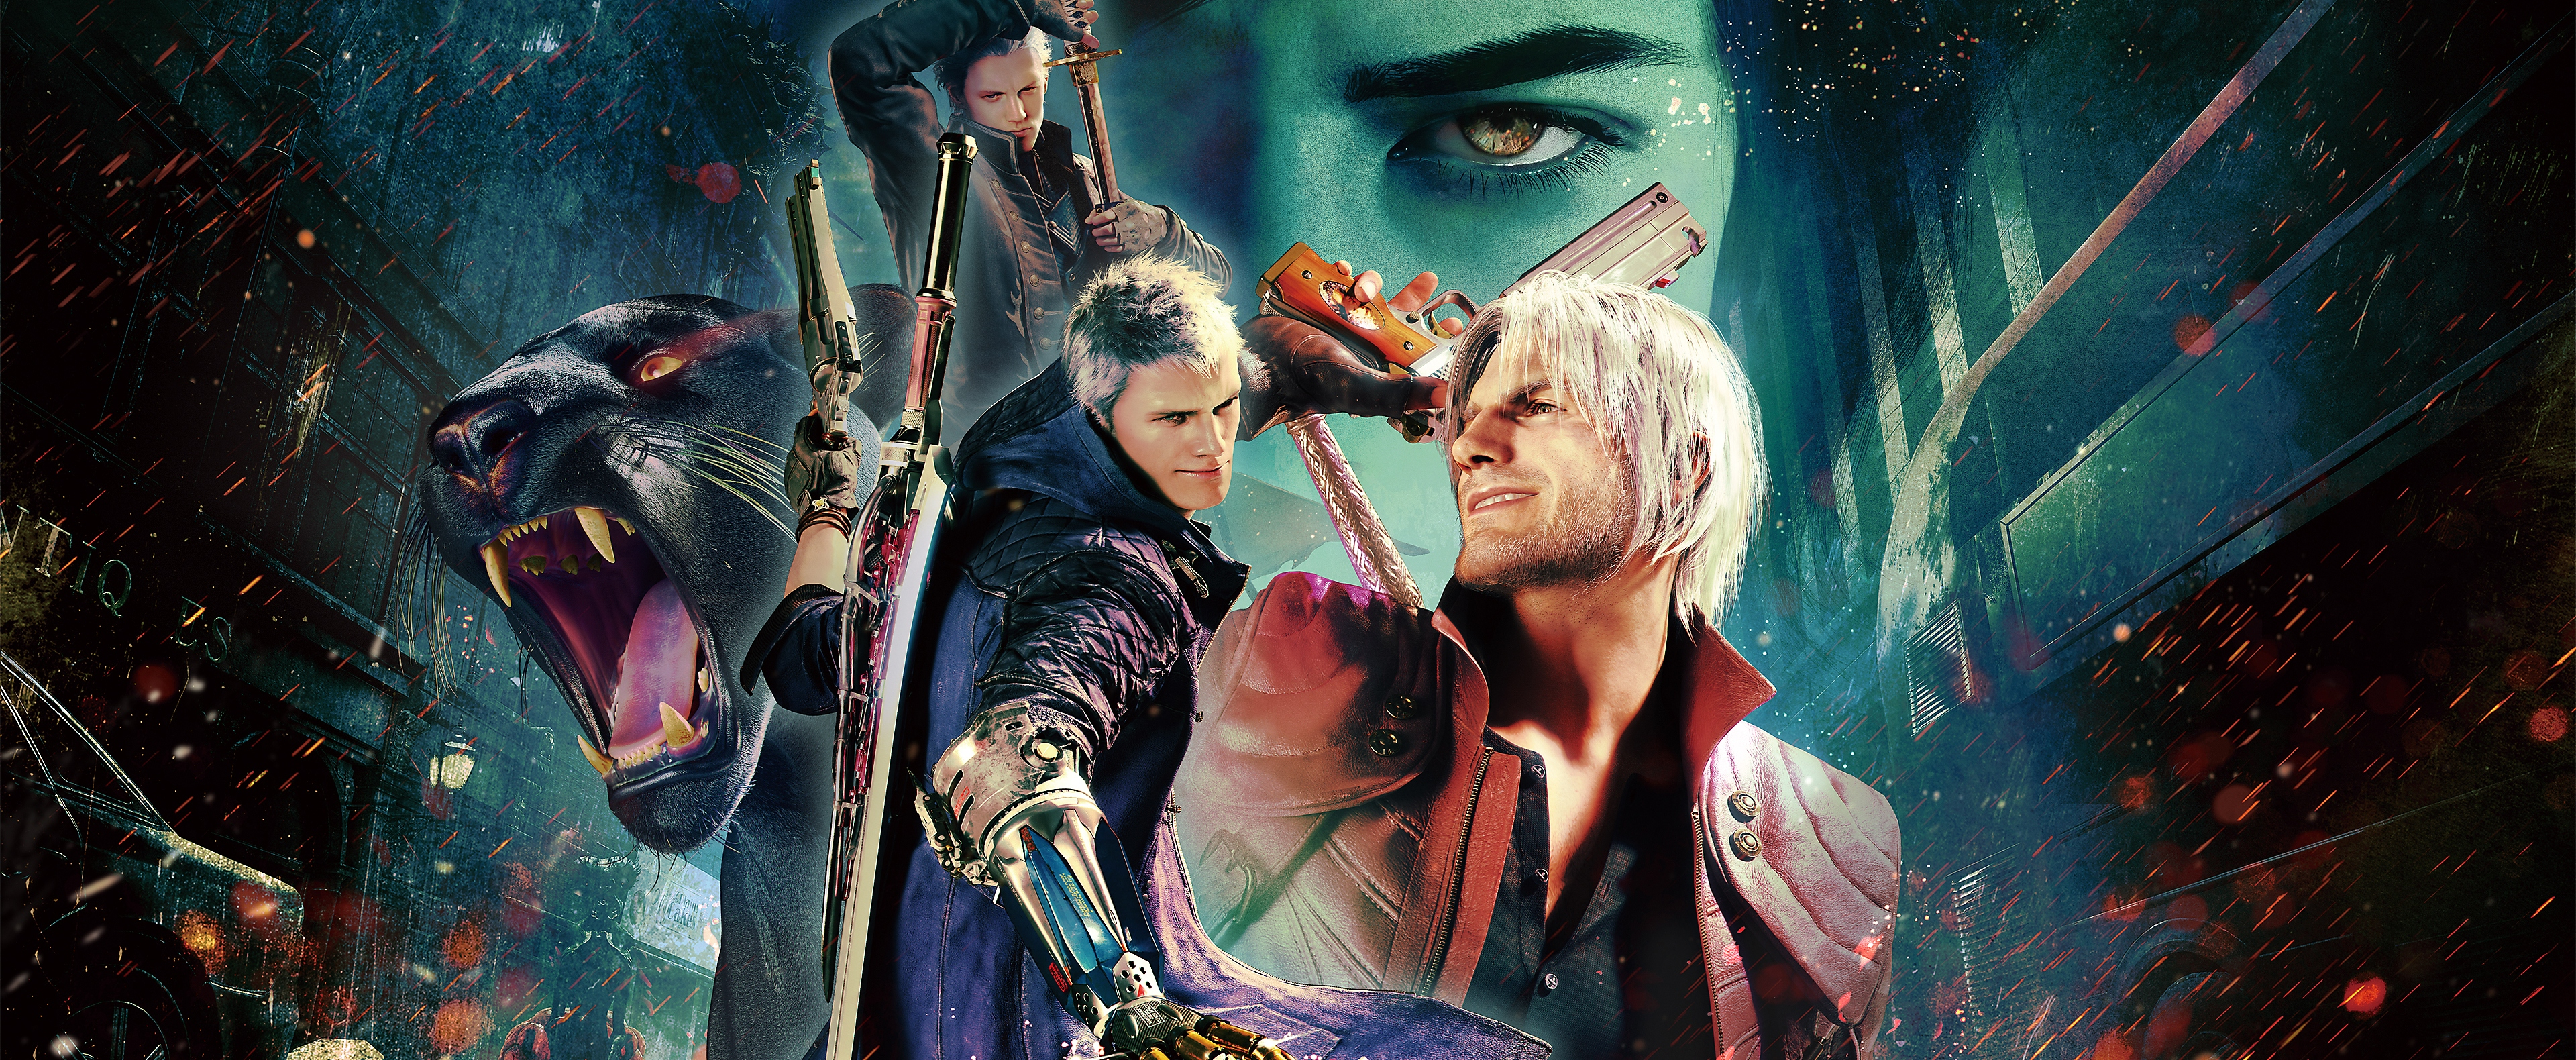 Devil May Cry 5: Special Edition - F11/çarpı işareti tuşu Art